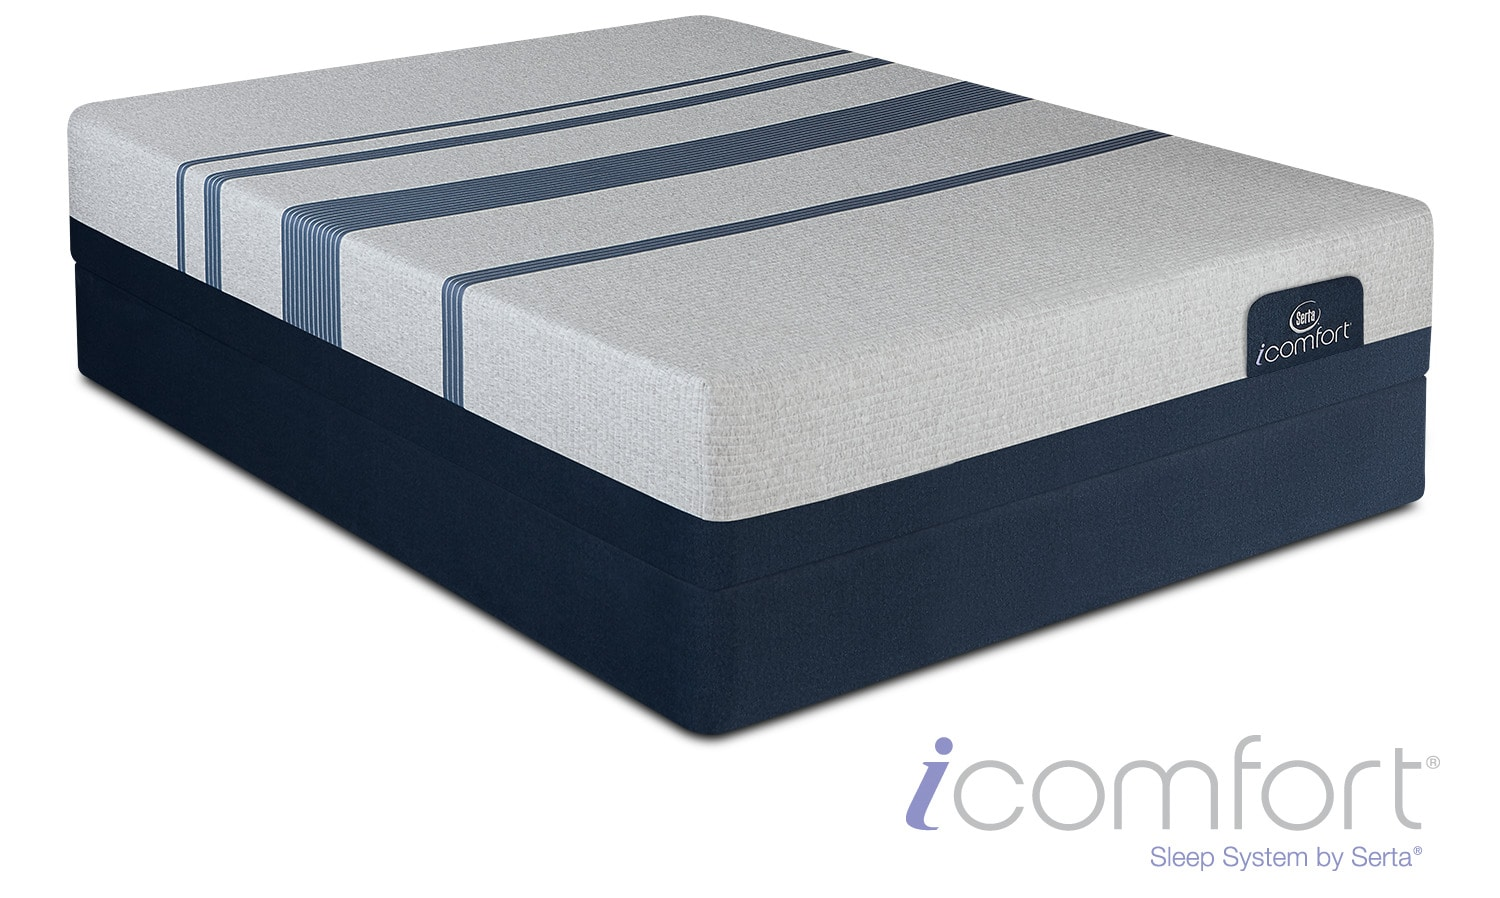 The Blue 300 Firm Mattress Collection